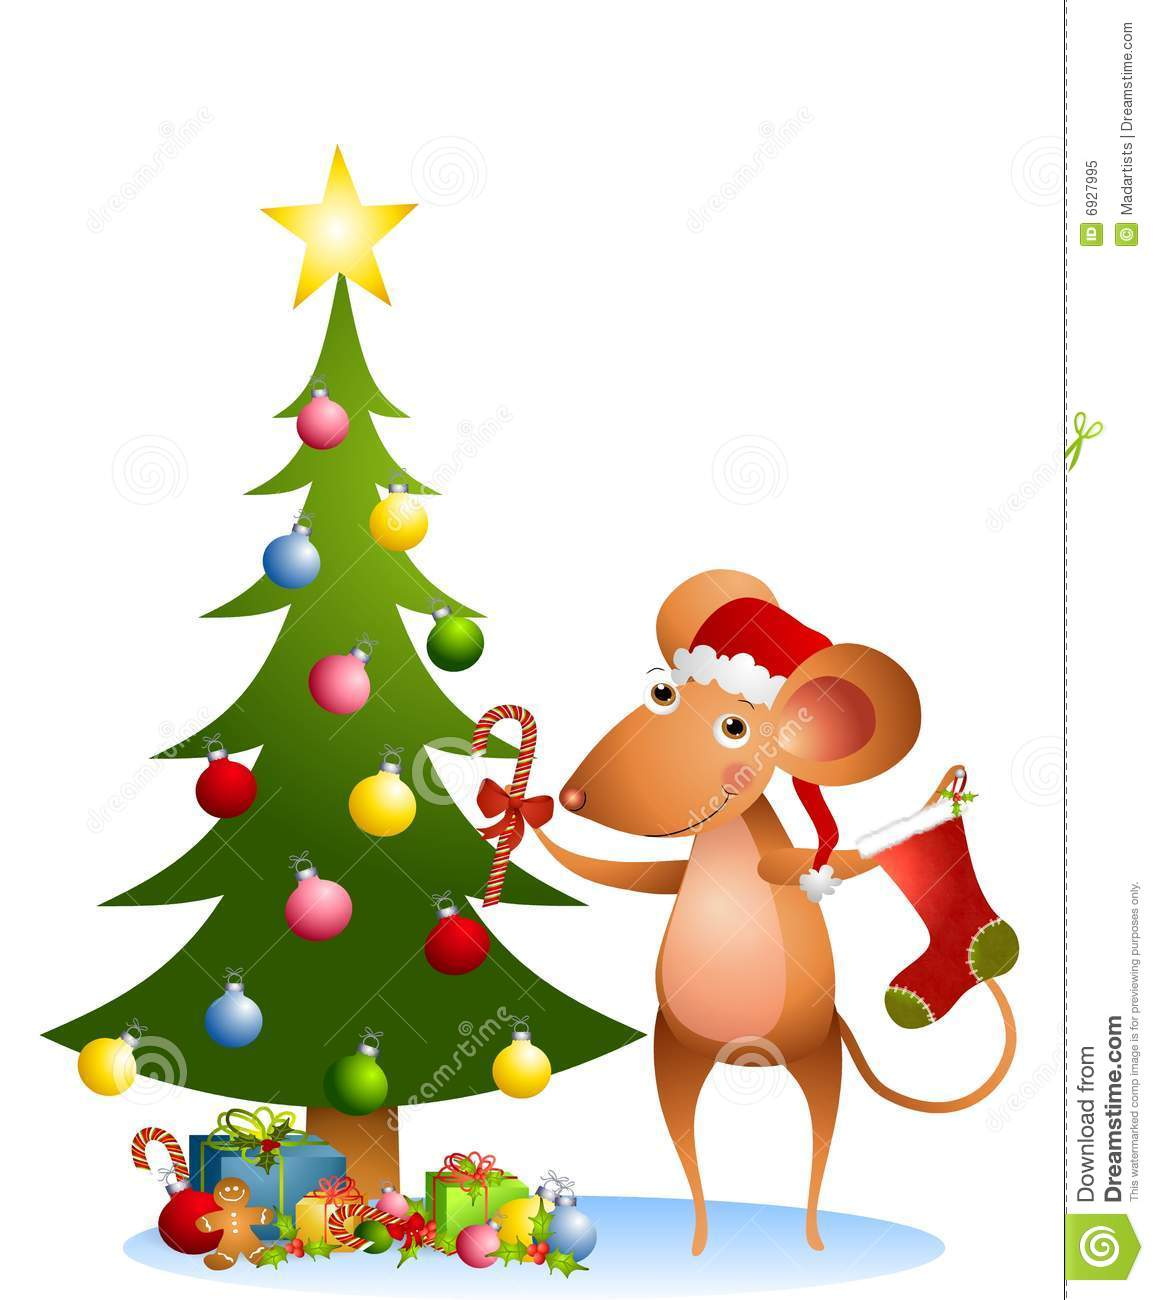 christmas mouse clipart - photo #41